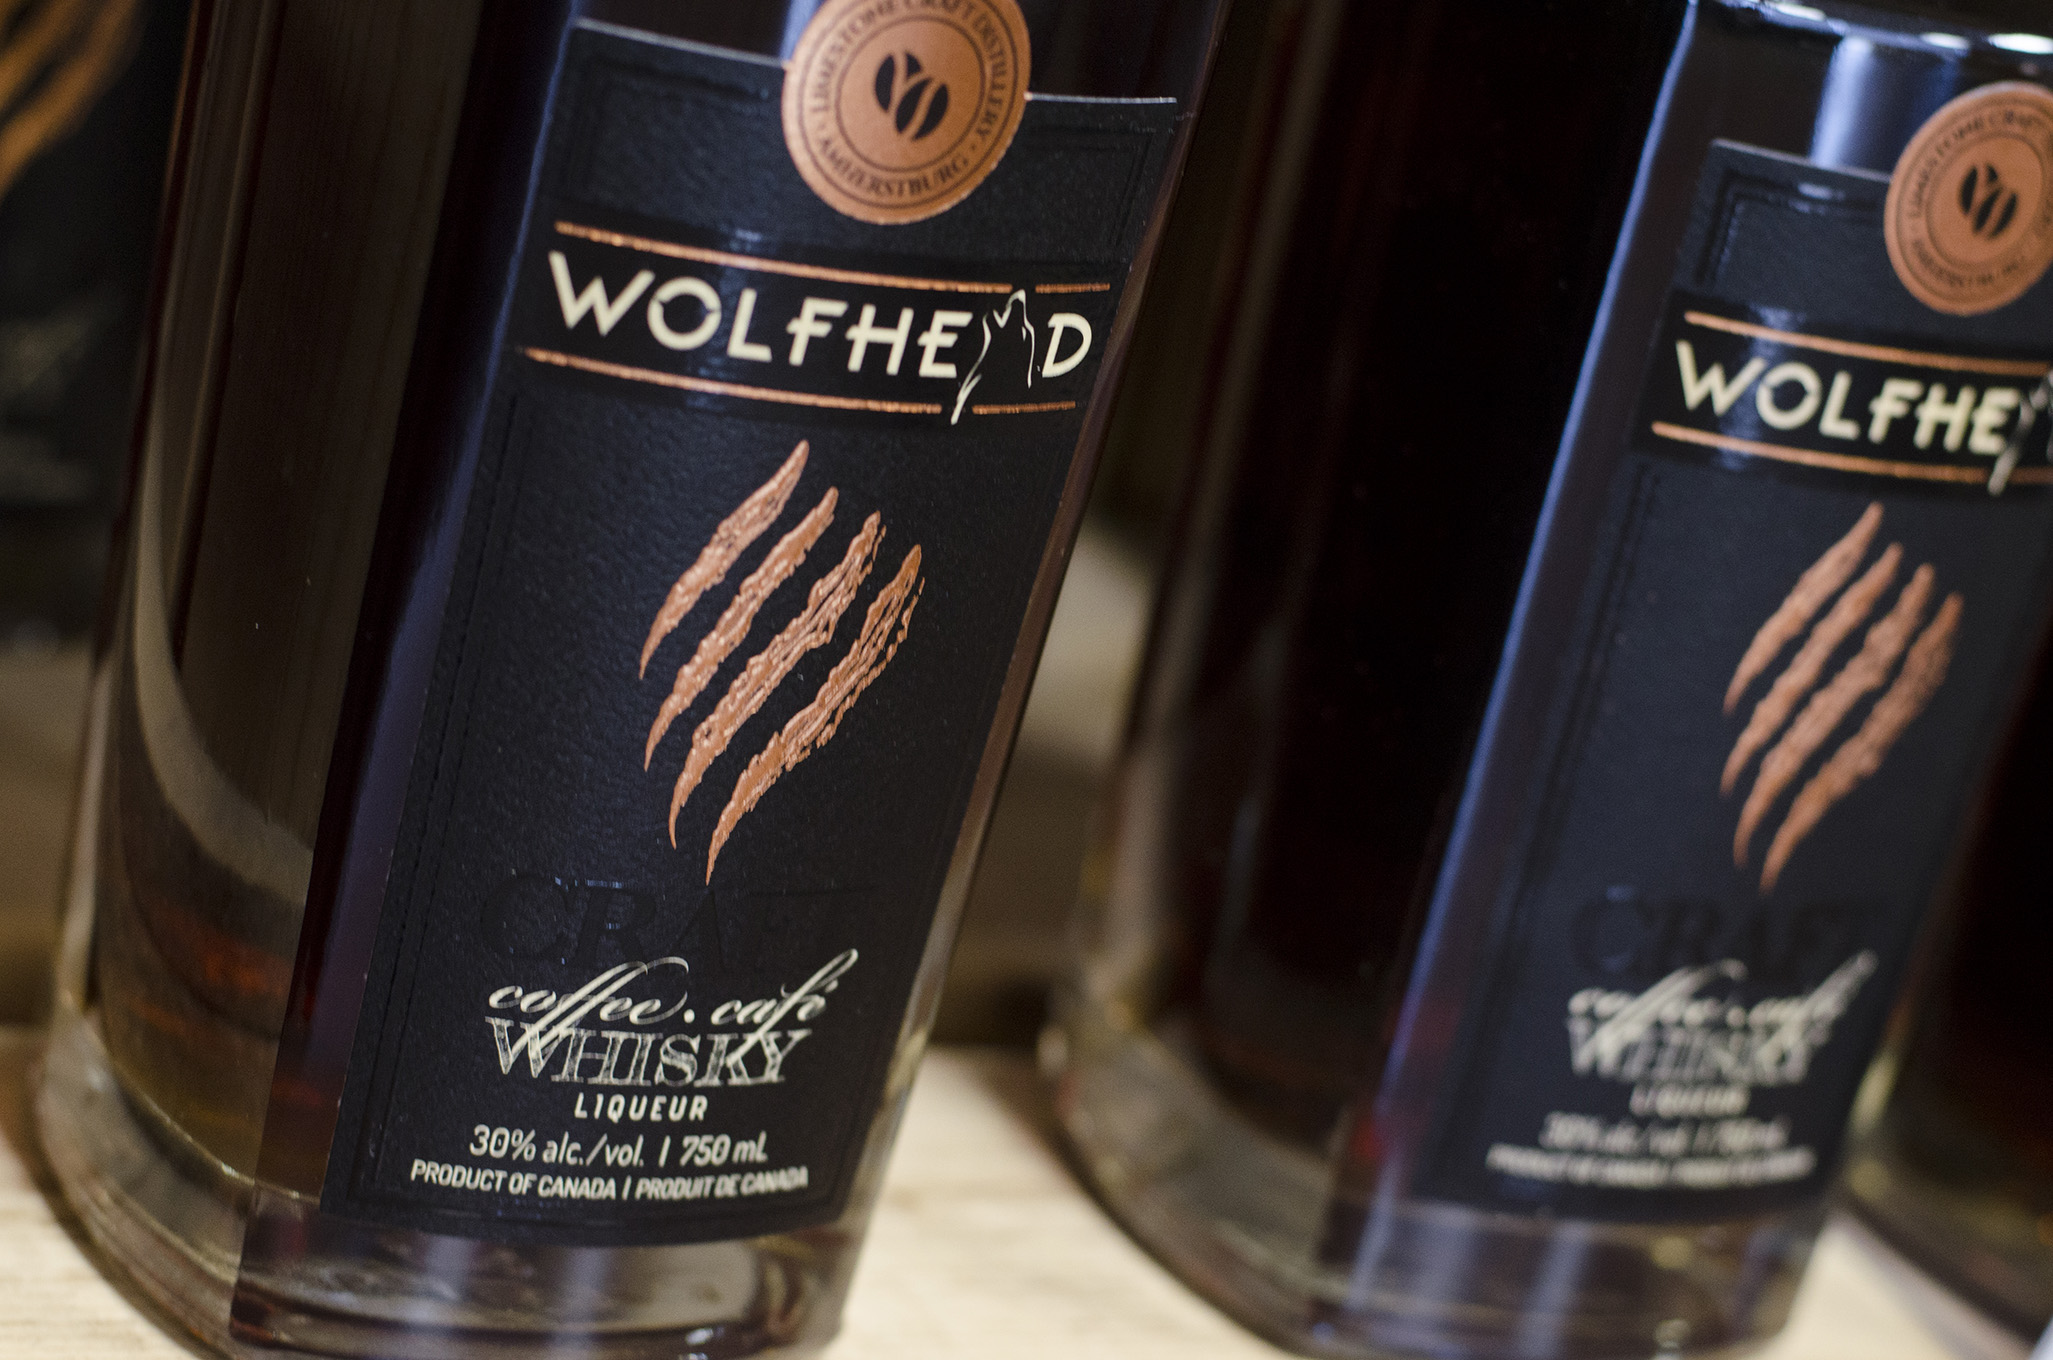 Wolfhead Coffee whisky is distilled at Wolfhead Distillery in Amherstburg, Ontario.